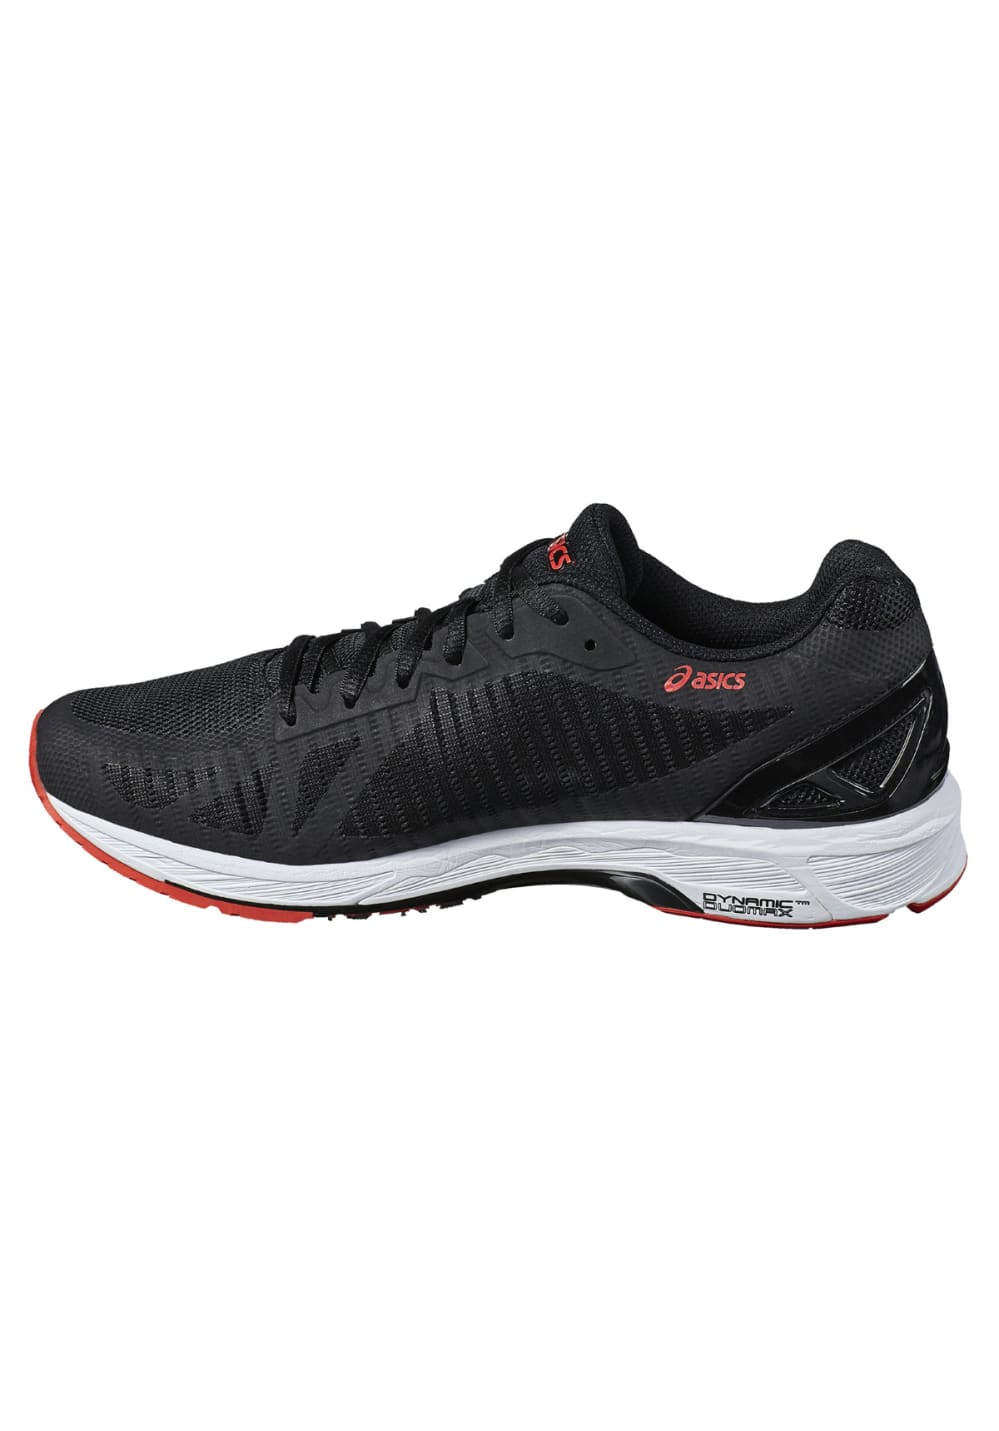 ASICS GEL-DS Trainer 23 - Running shoes for Men - Black